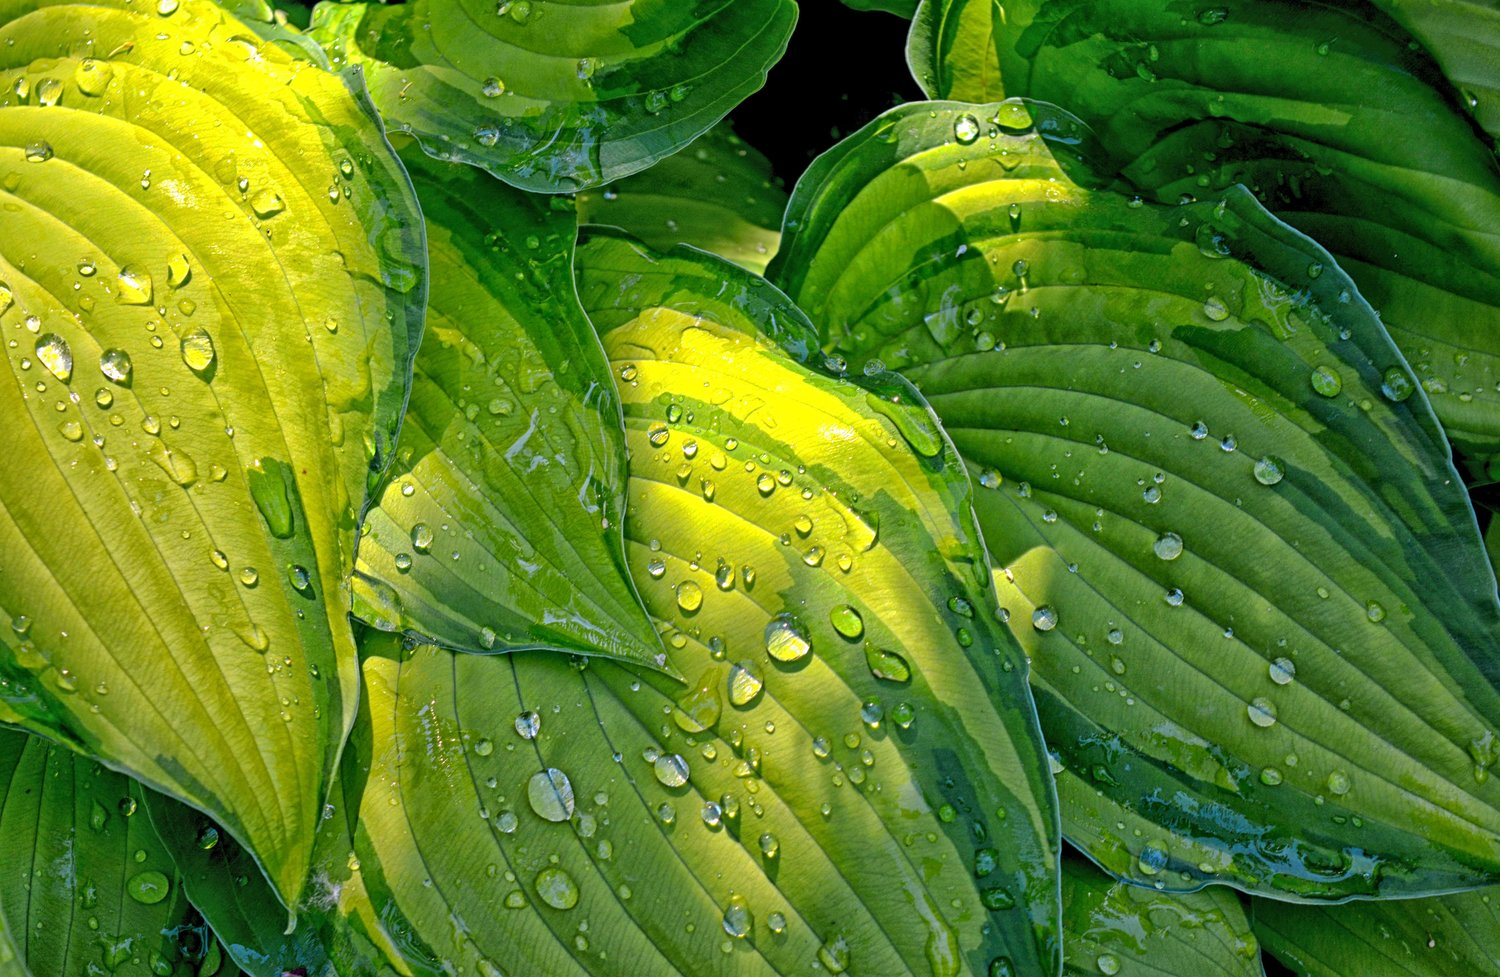 Variegated hosta foliage with raindrops (Riley Sawyered)